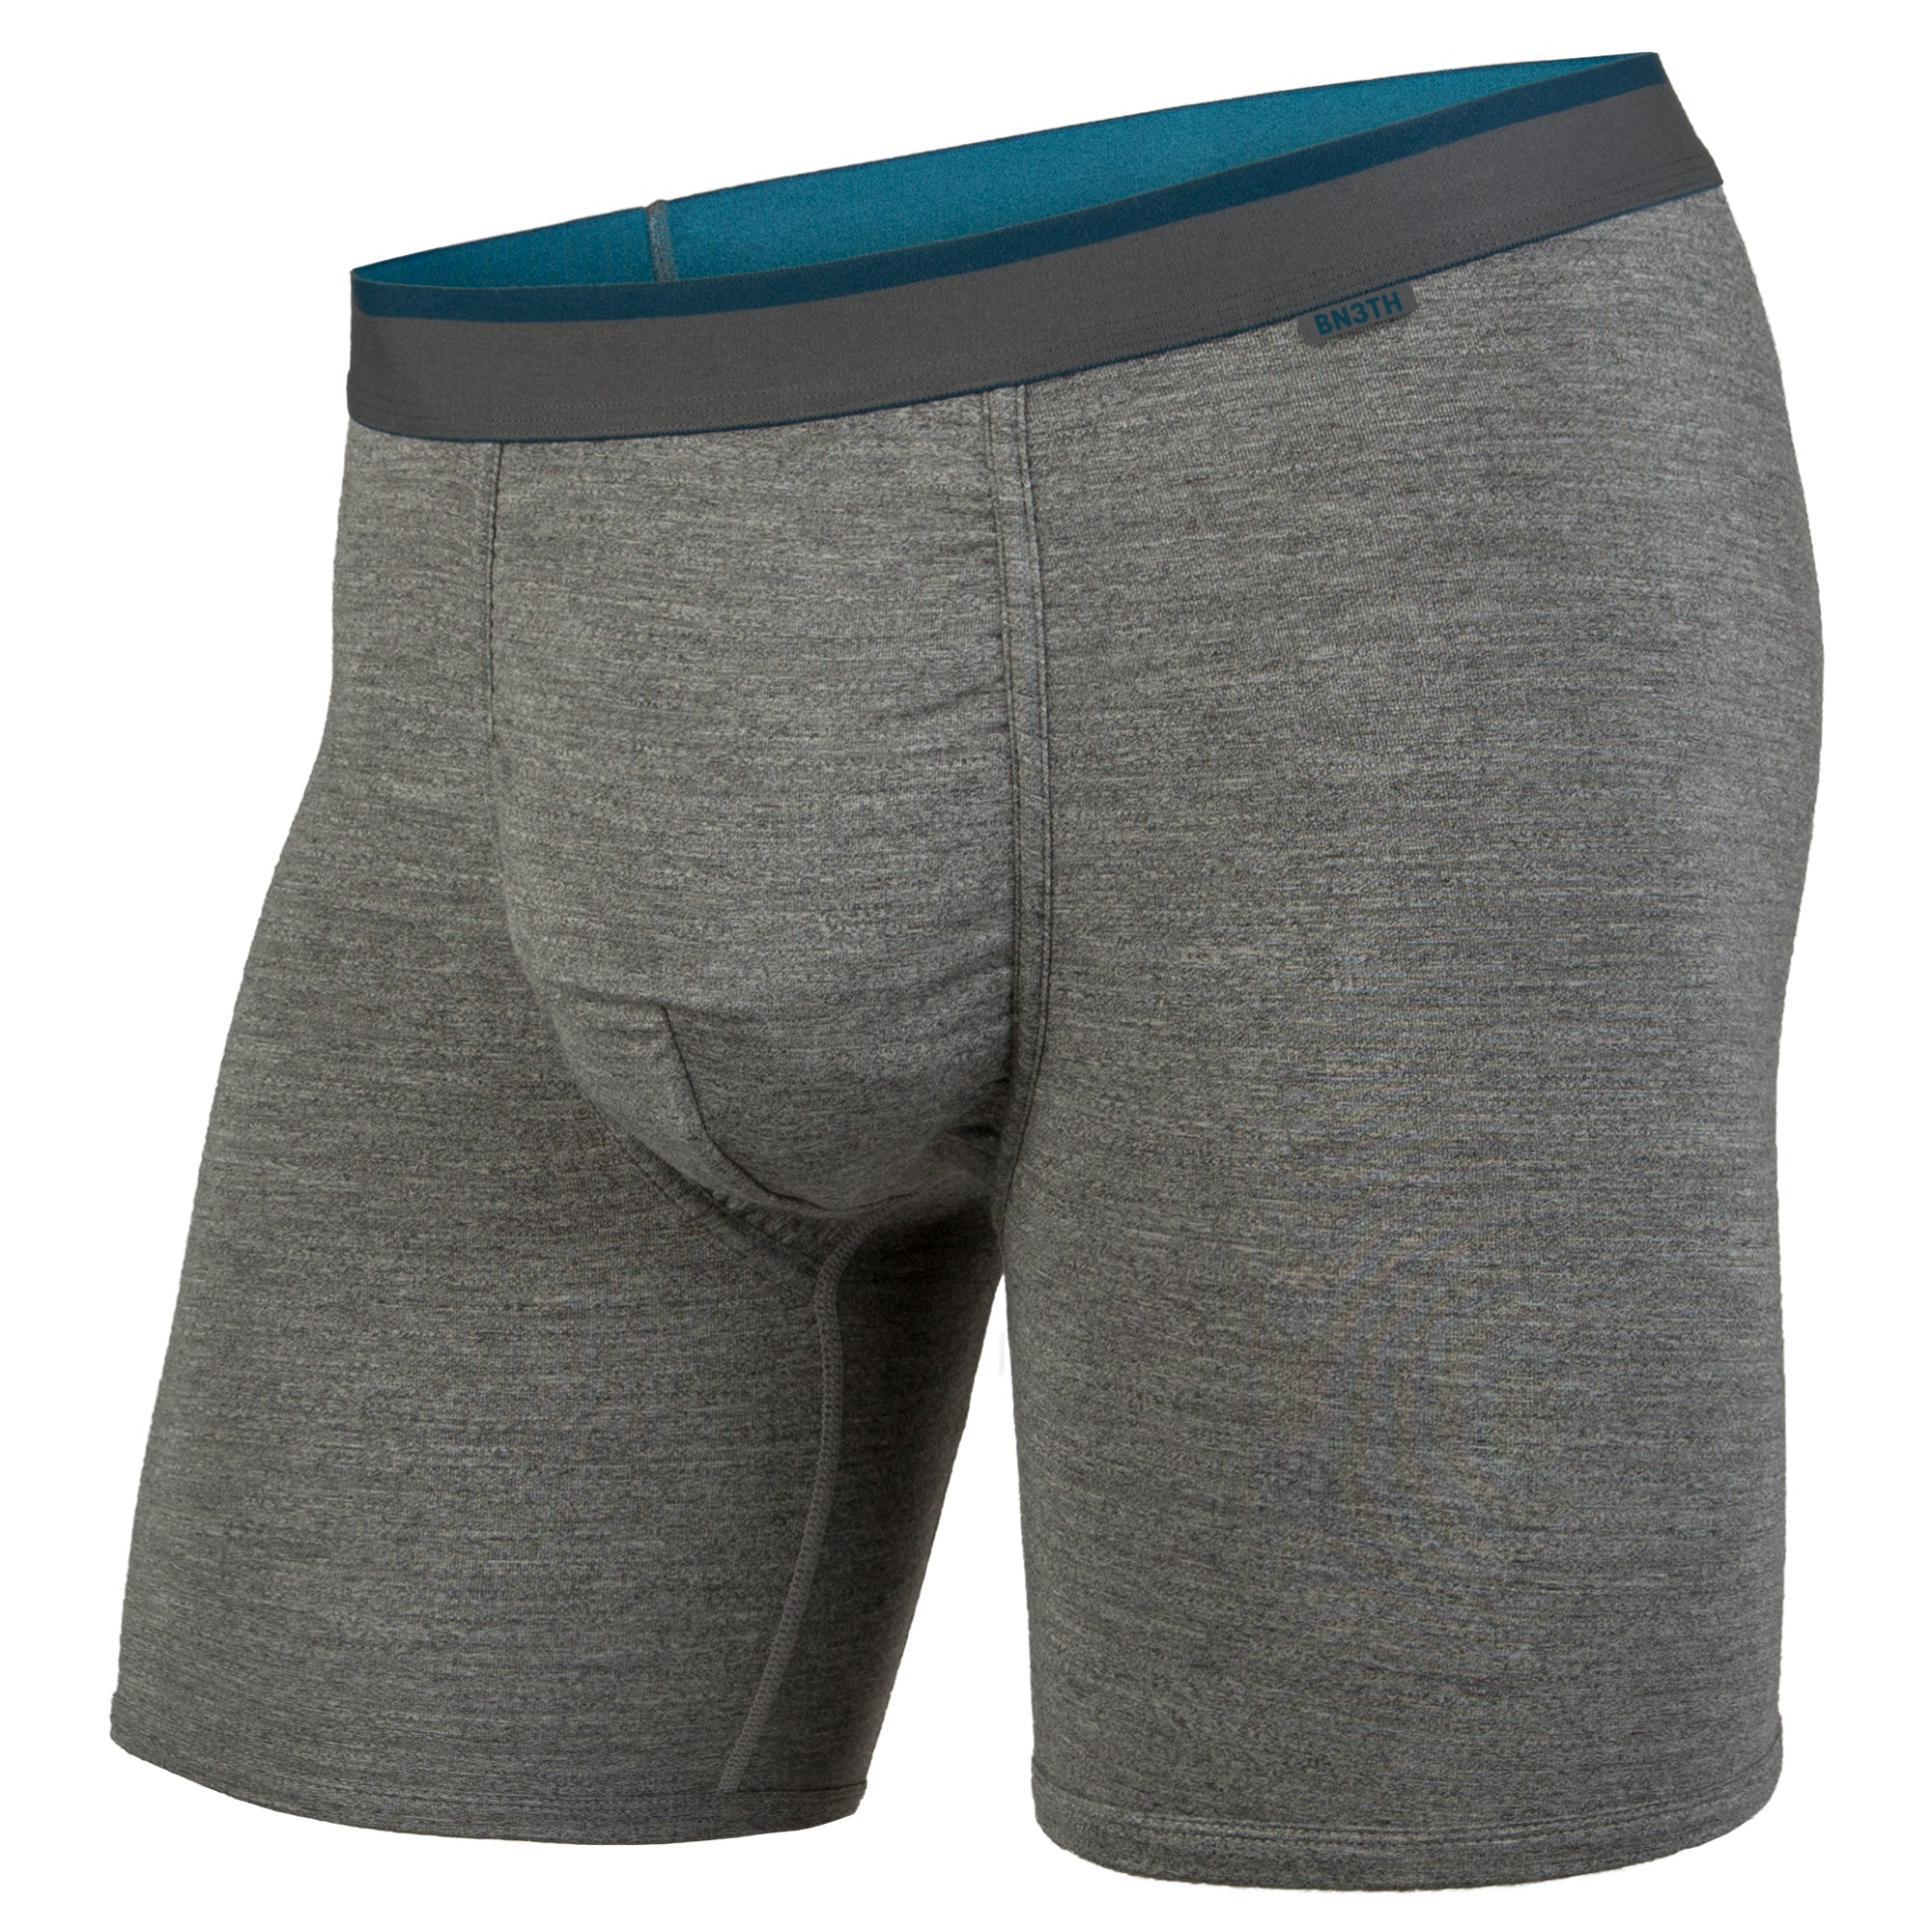 BN3TH classics boxer brief Charcoal Heather Ink